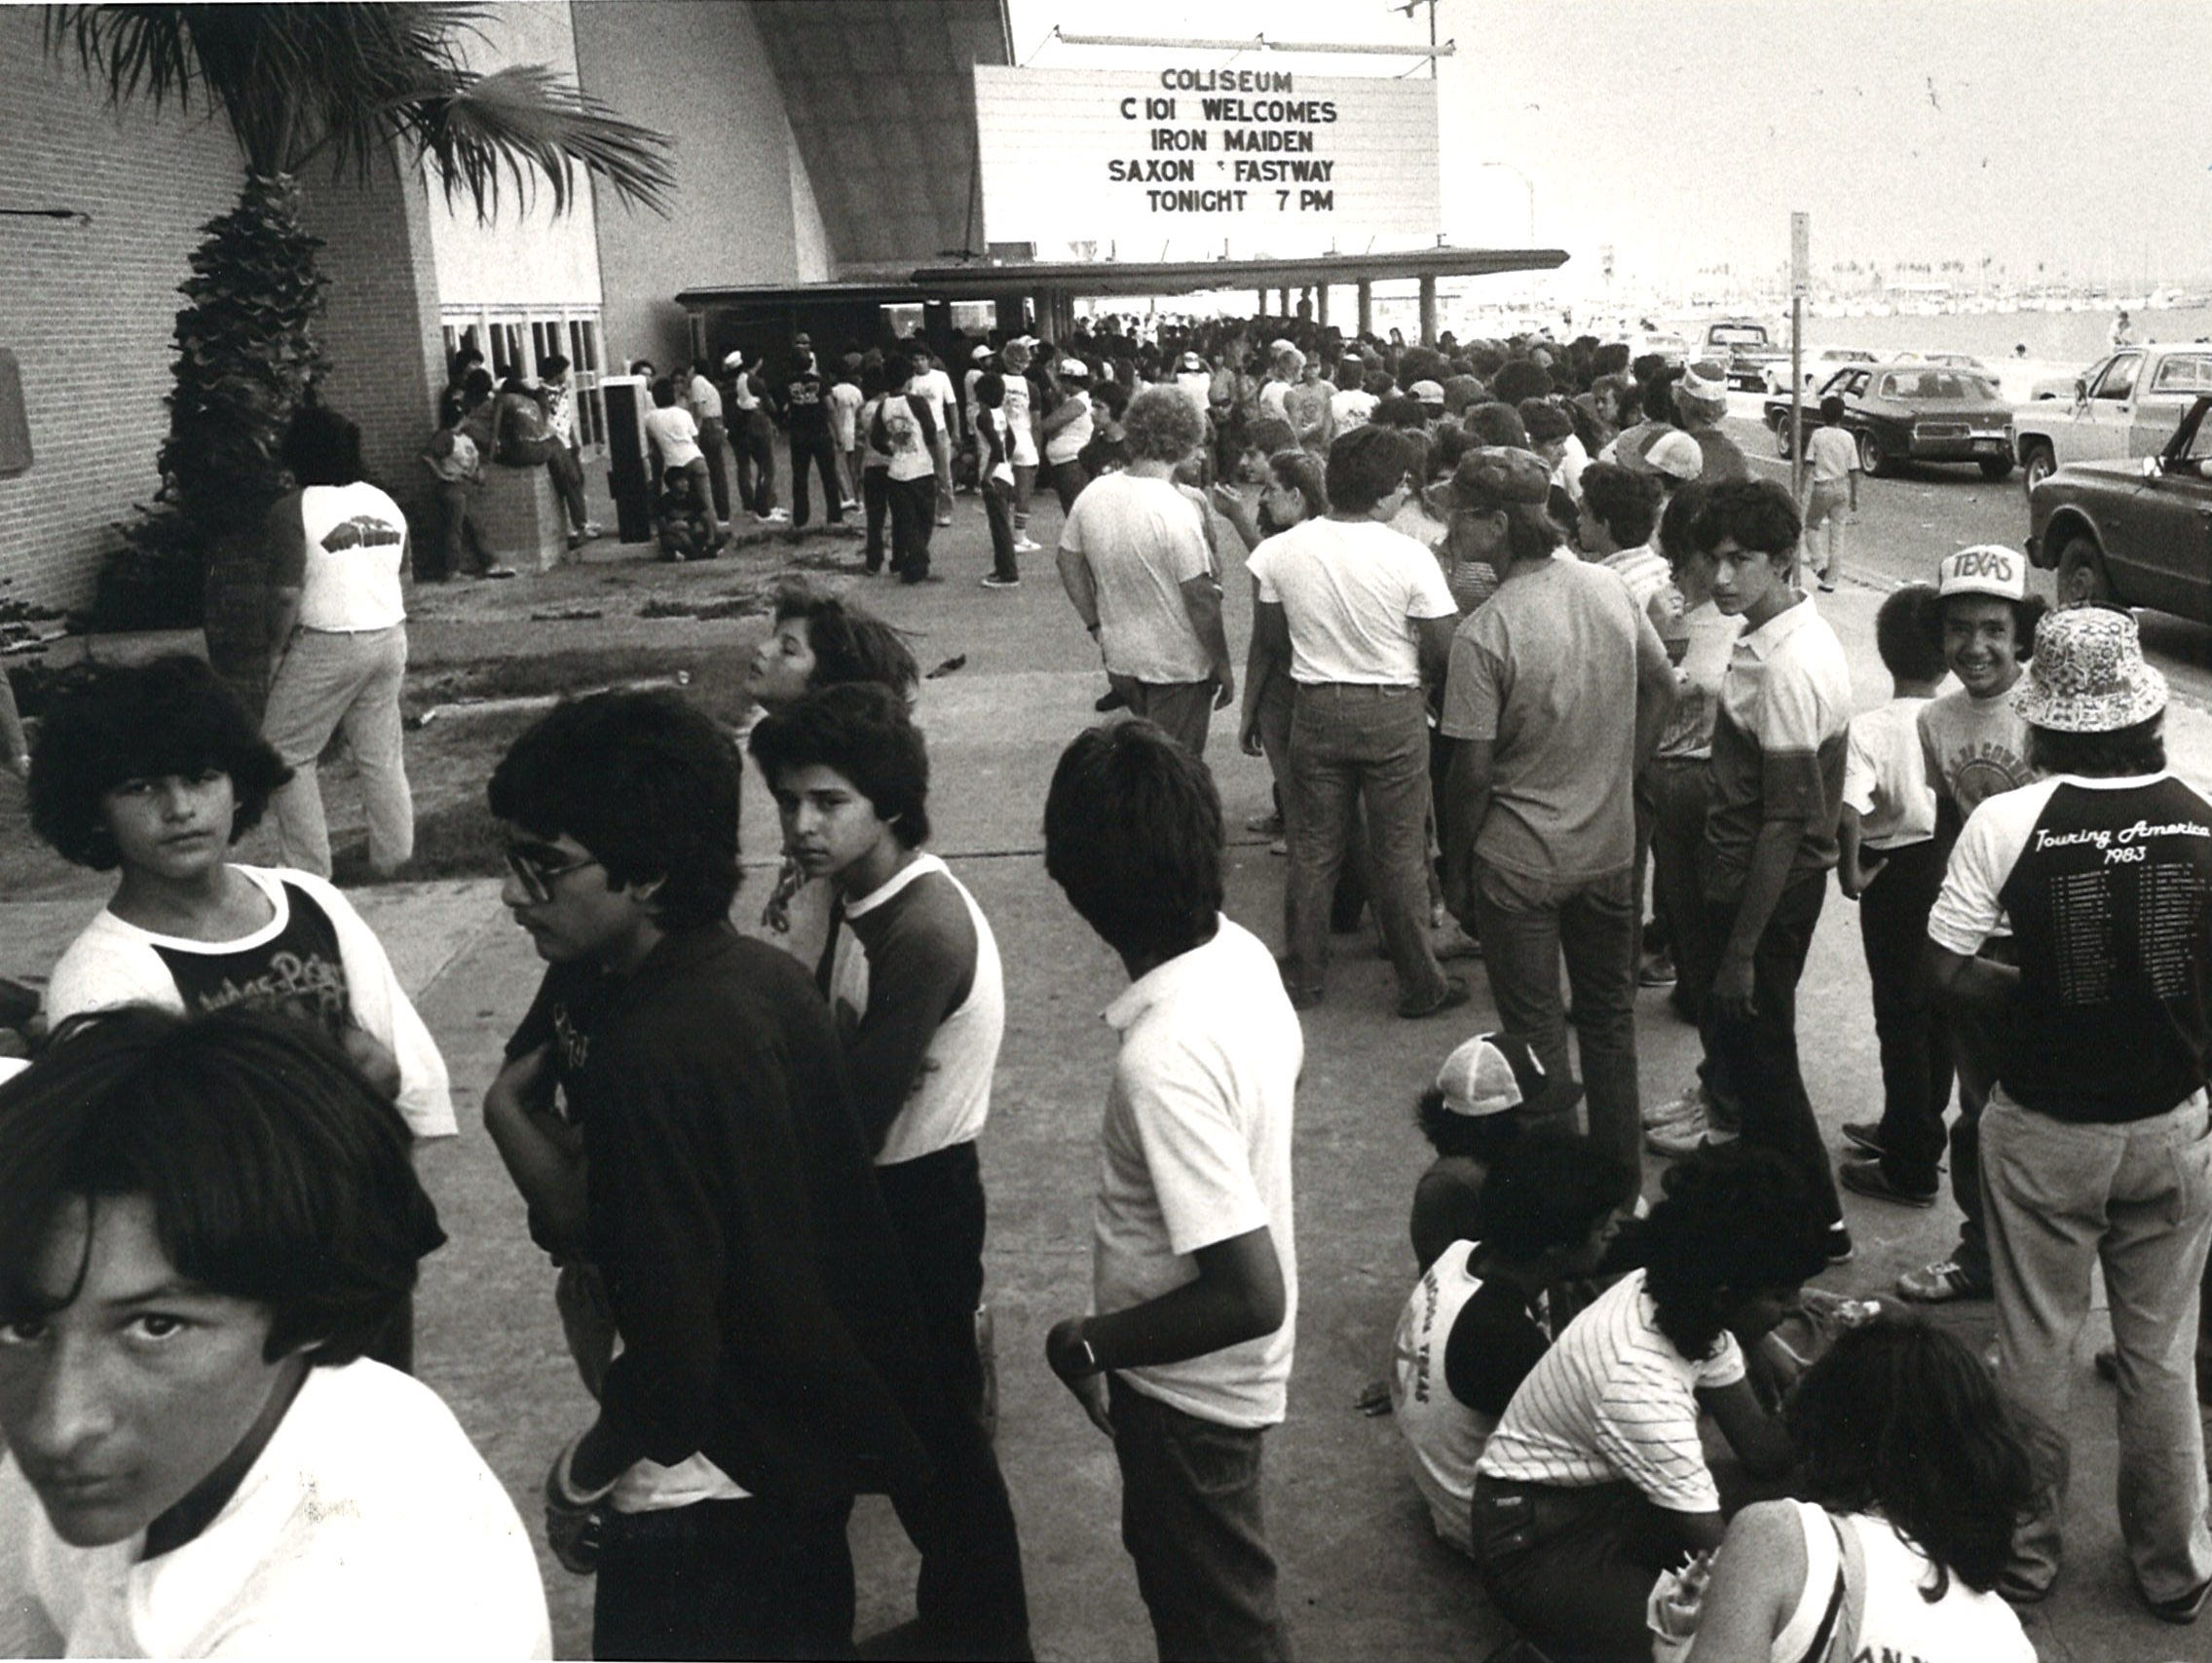 A crowd gathers before the C101 Iron Maiden concert featuring Saxon and Fastway on July 26, 1983 at Memorial Coliseum in Corpus Christi.